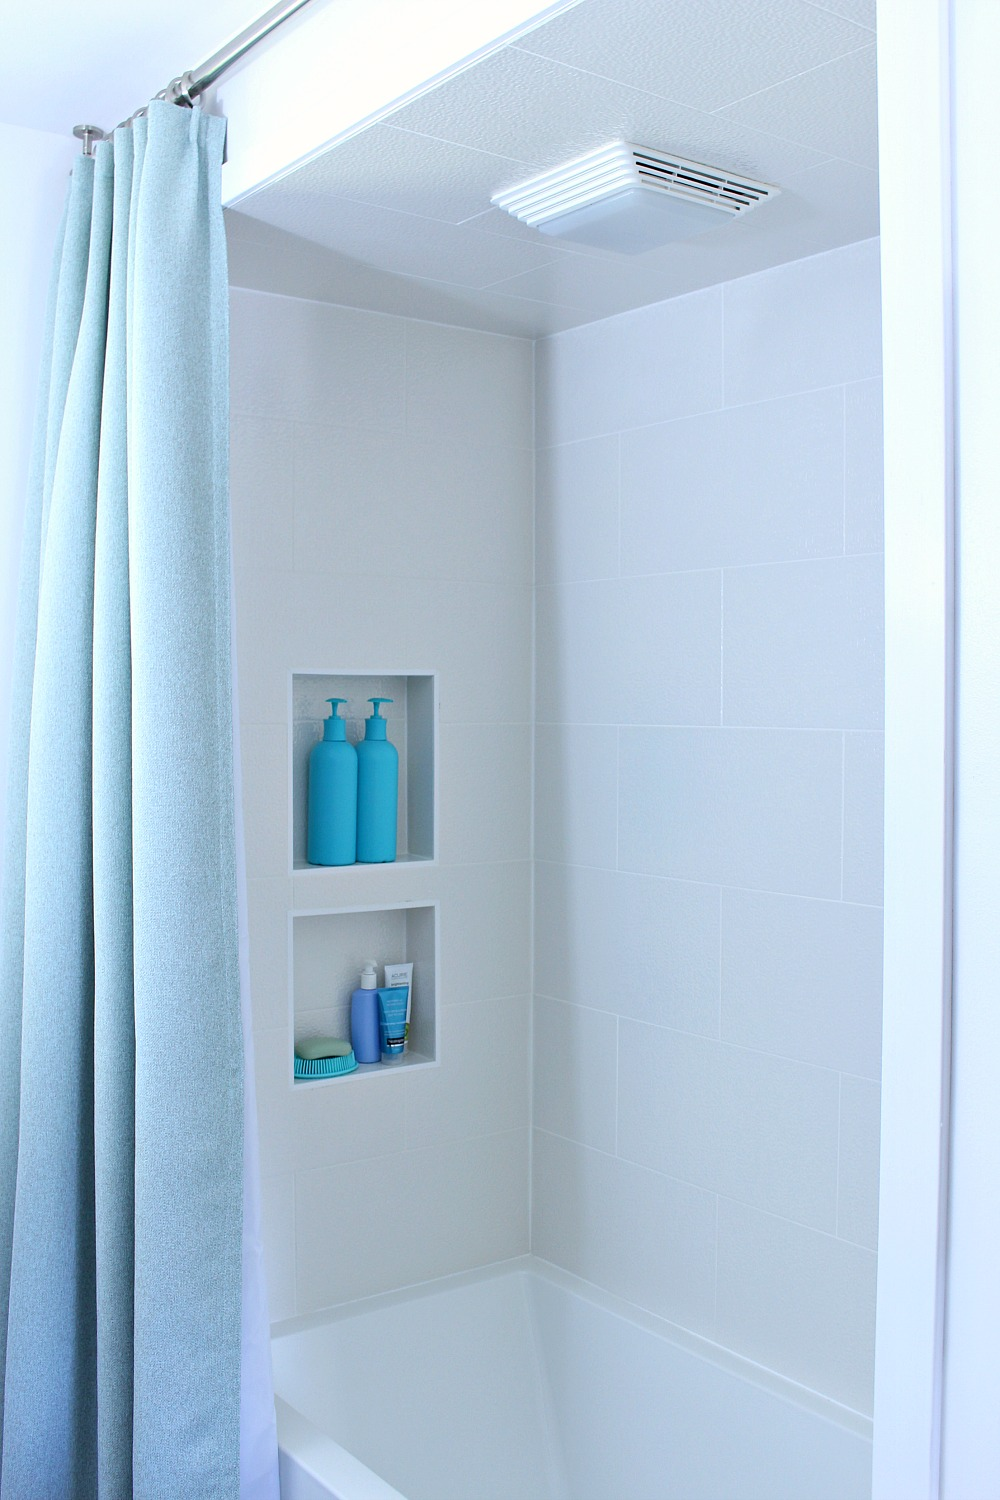 Amazing Ceiling Mounted Shower Curtain Rod + Turquoise Tweed Pleated Shower Curtain  In Modern Bathroom Reno |